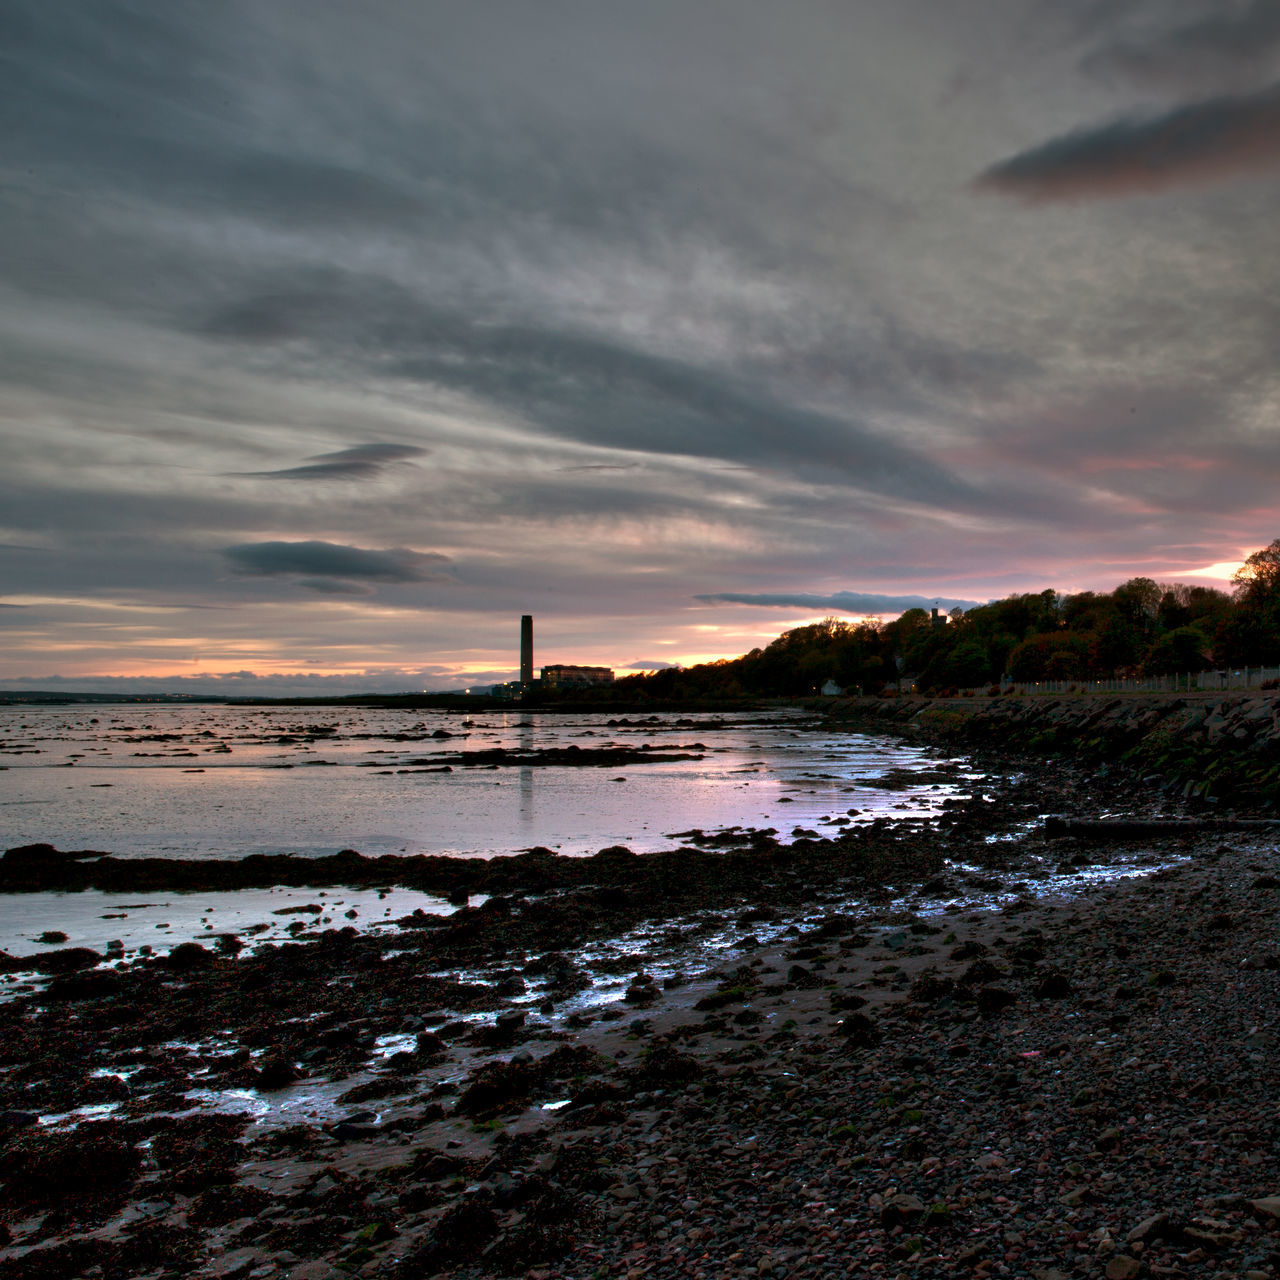 Architecture Beach Buildings Culross Culross Beach Culross Town House Dunfermline East Coast Fife  Firth Of Forth Historic Scotland Kingdom Of Fife Longannet Power Station No People Outlander Powerstation Saint Serf Scotland Scottish Sunset Unicorn